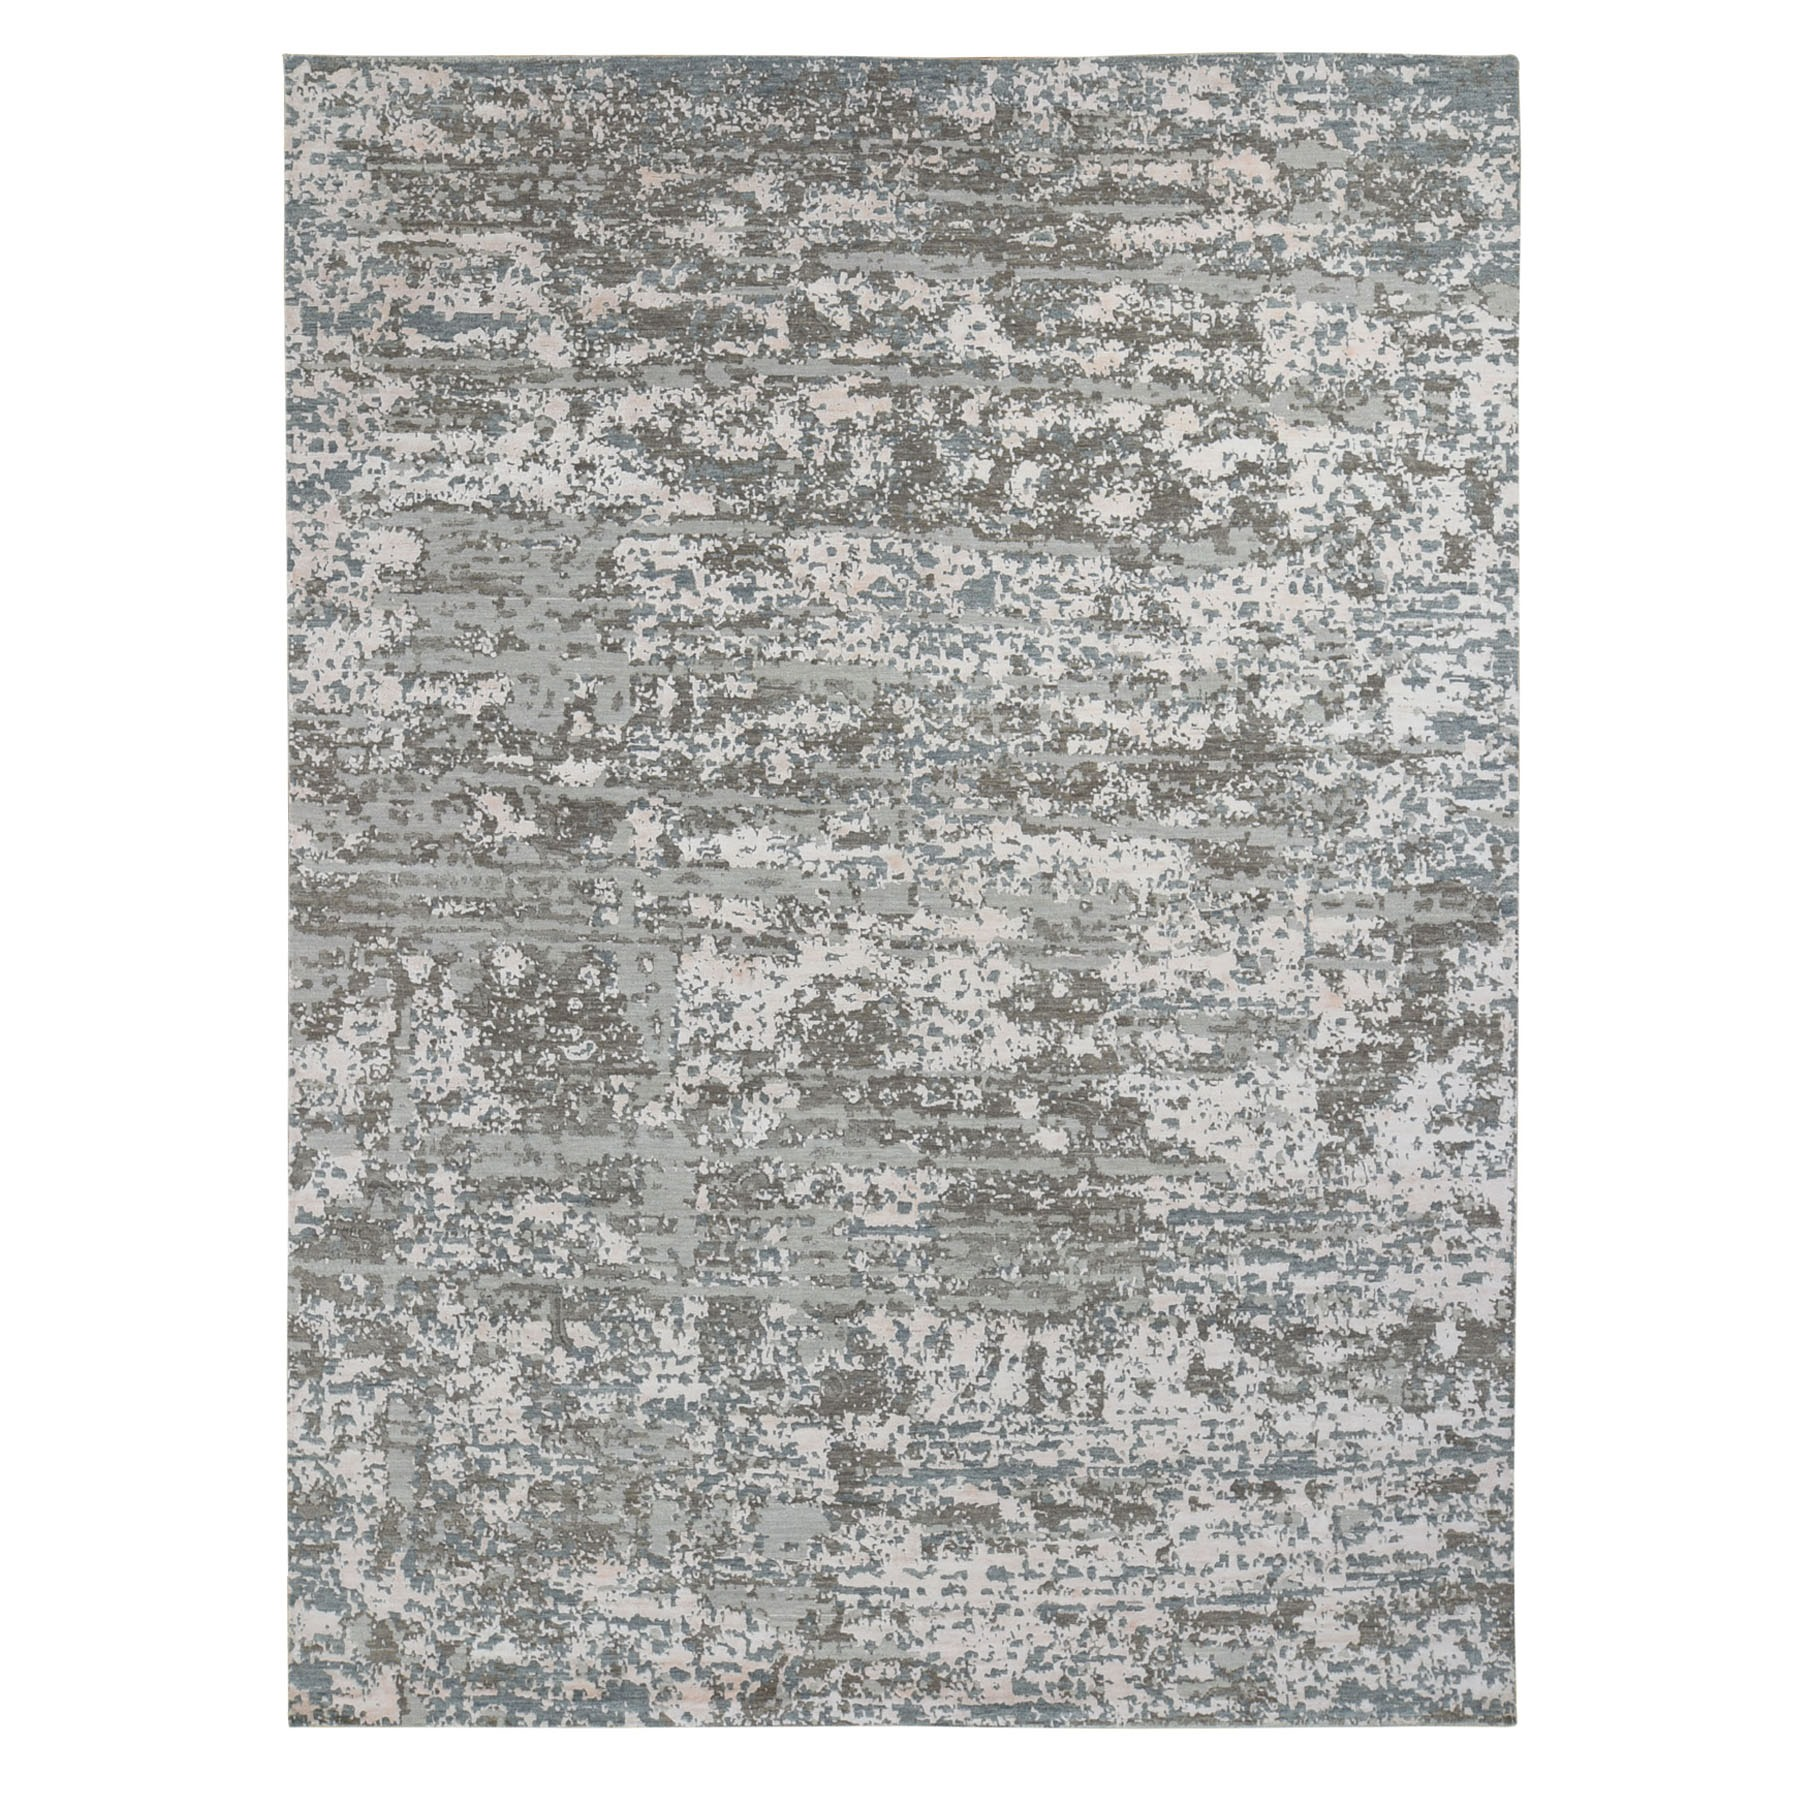 9'X12' Gray Denser Weave Abstract Design Wool And Silk Hi-Low Pile Hand Knotted Oriental Rug moae9cce